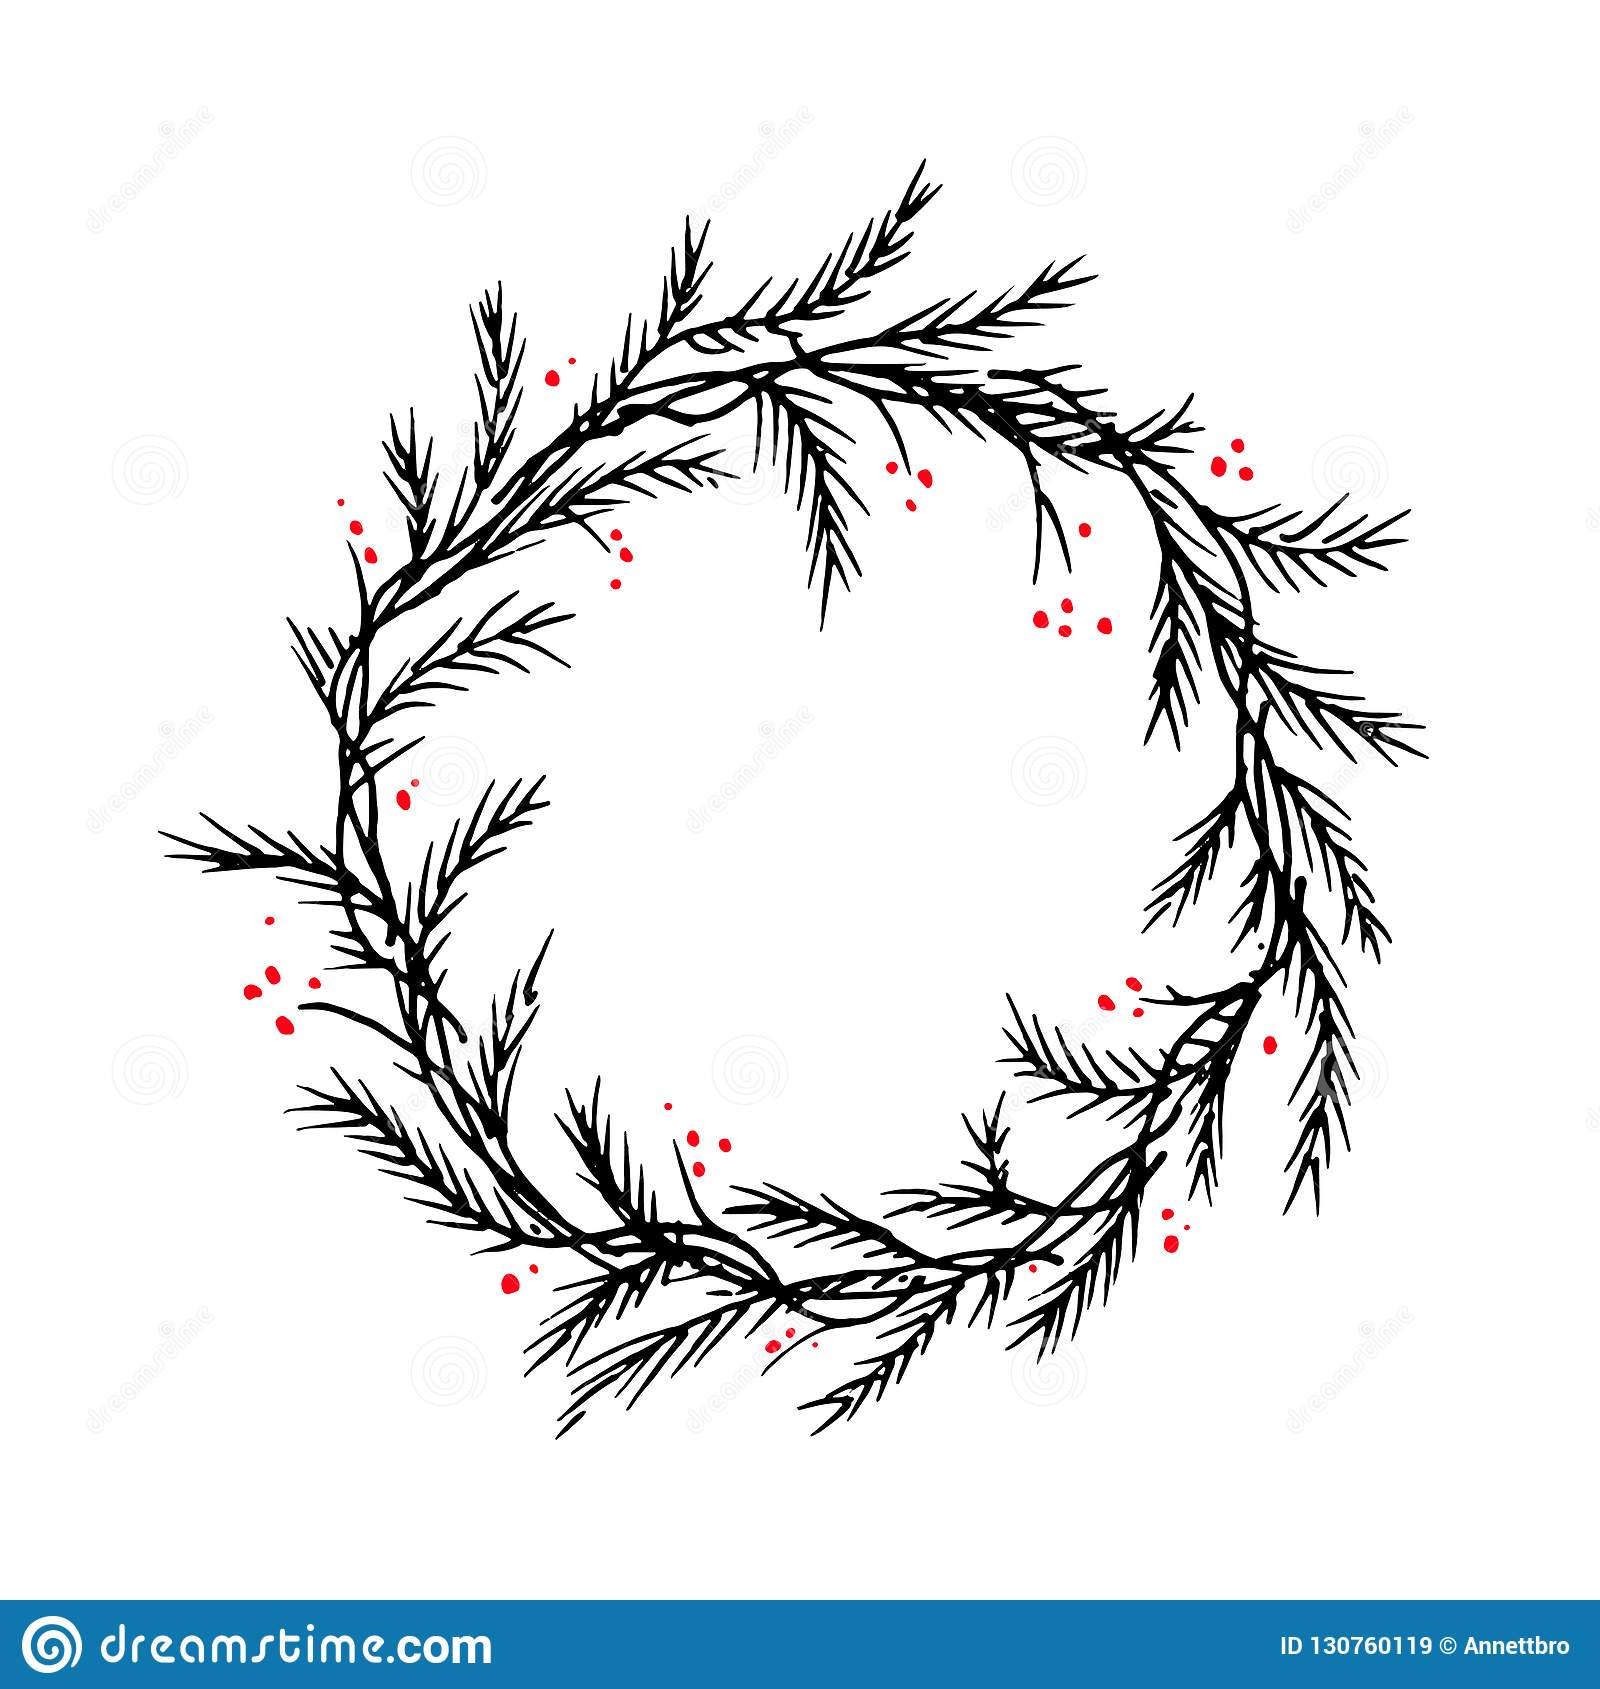 Christmas Wreath Silhouette.Vector Silhouette Christmas Wreath Frame Or Border Stock